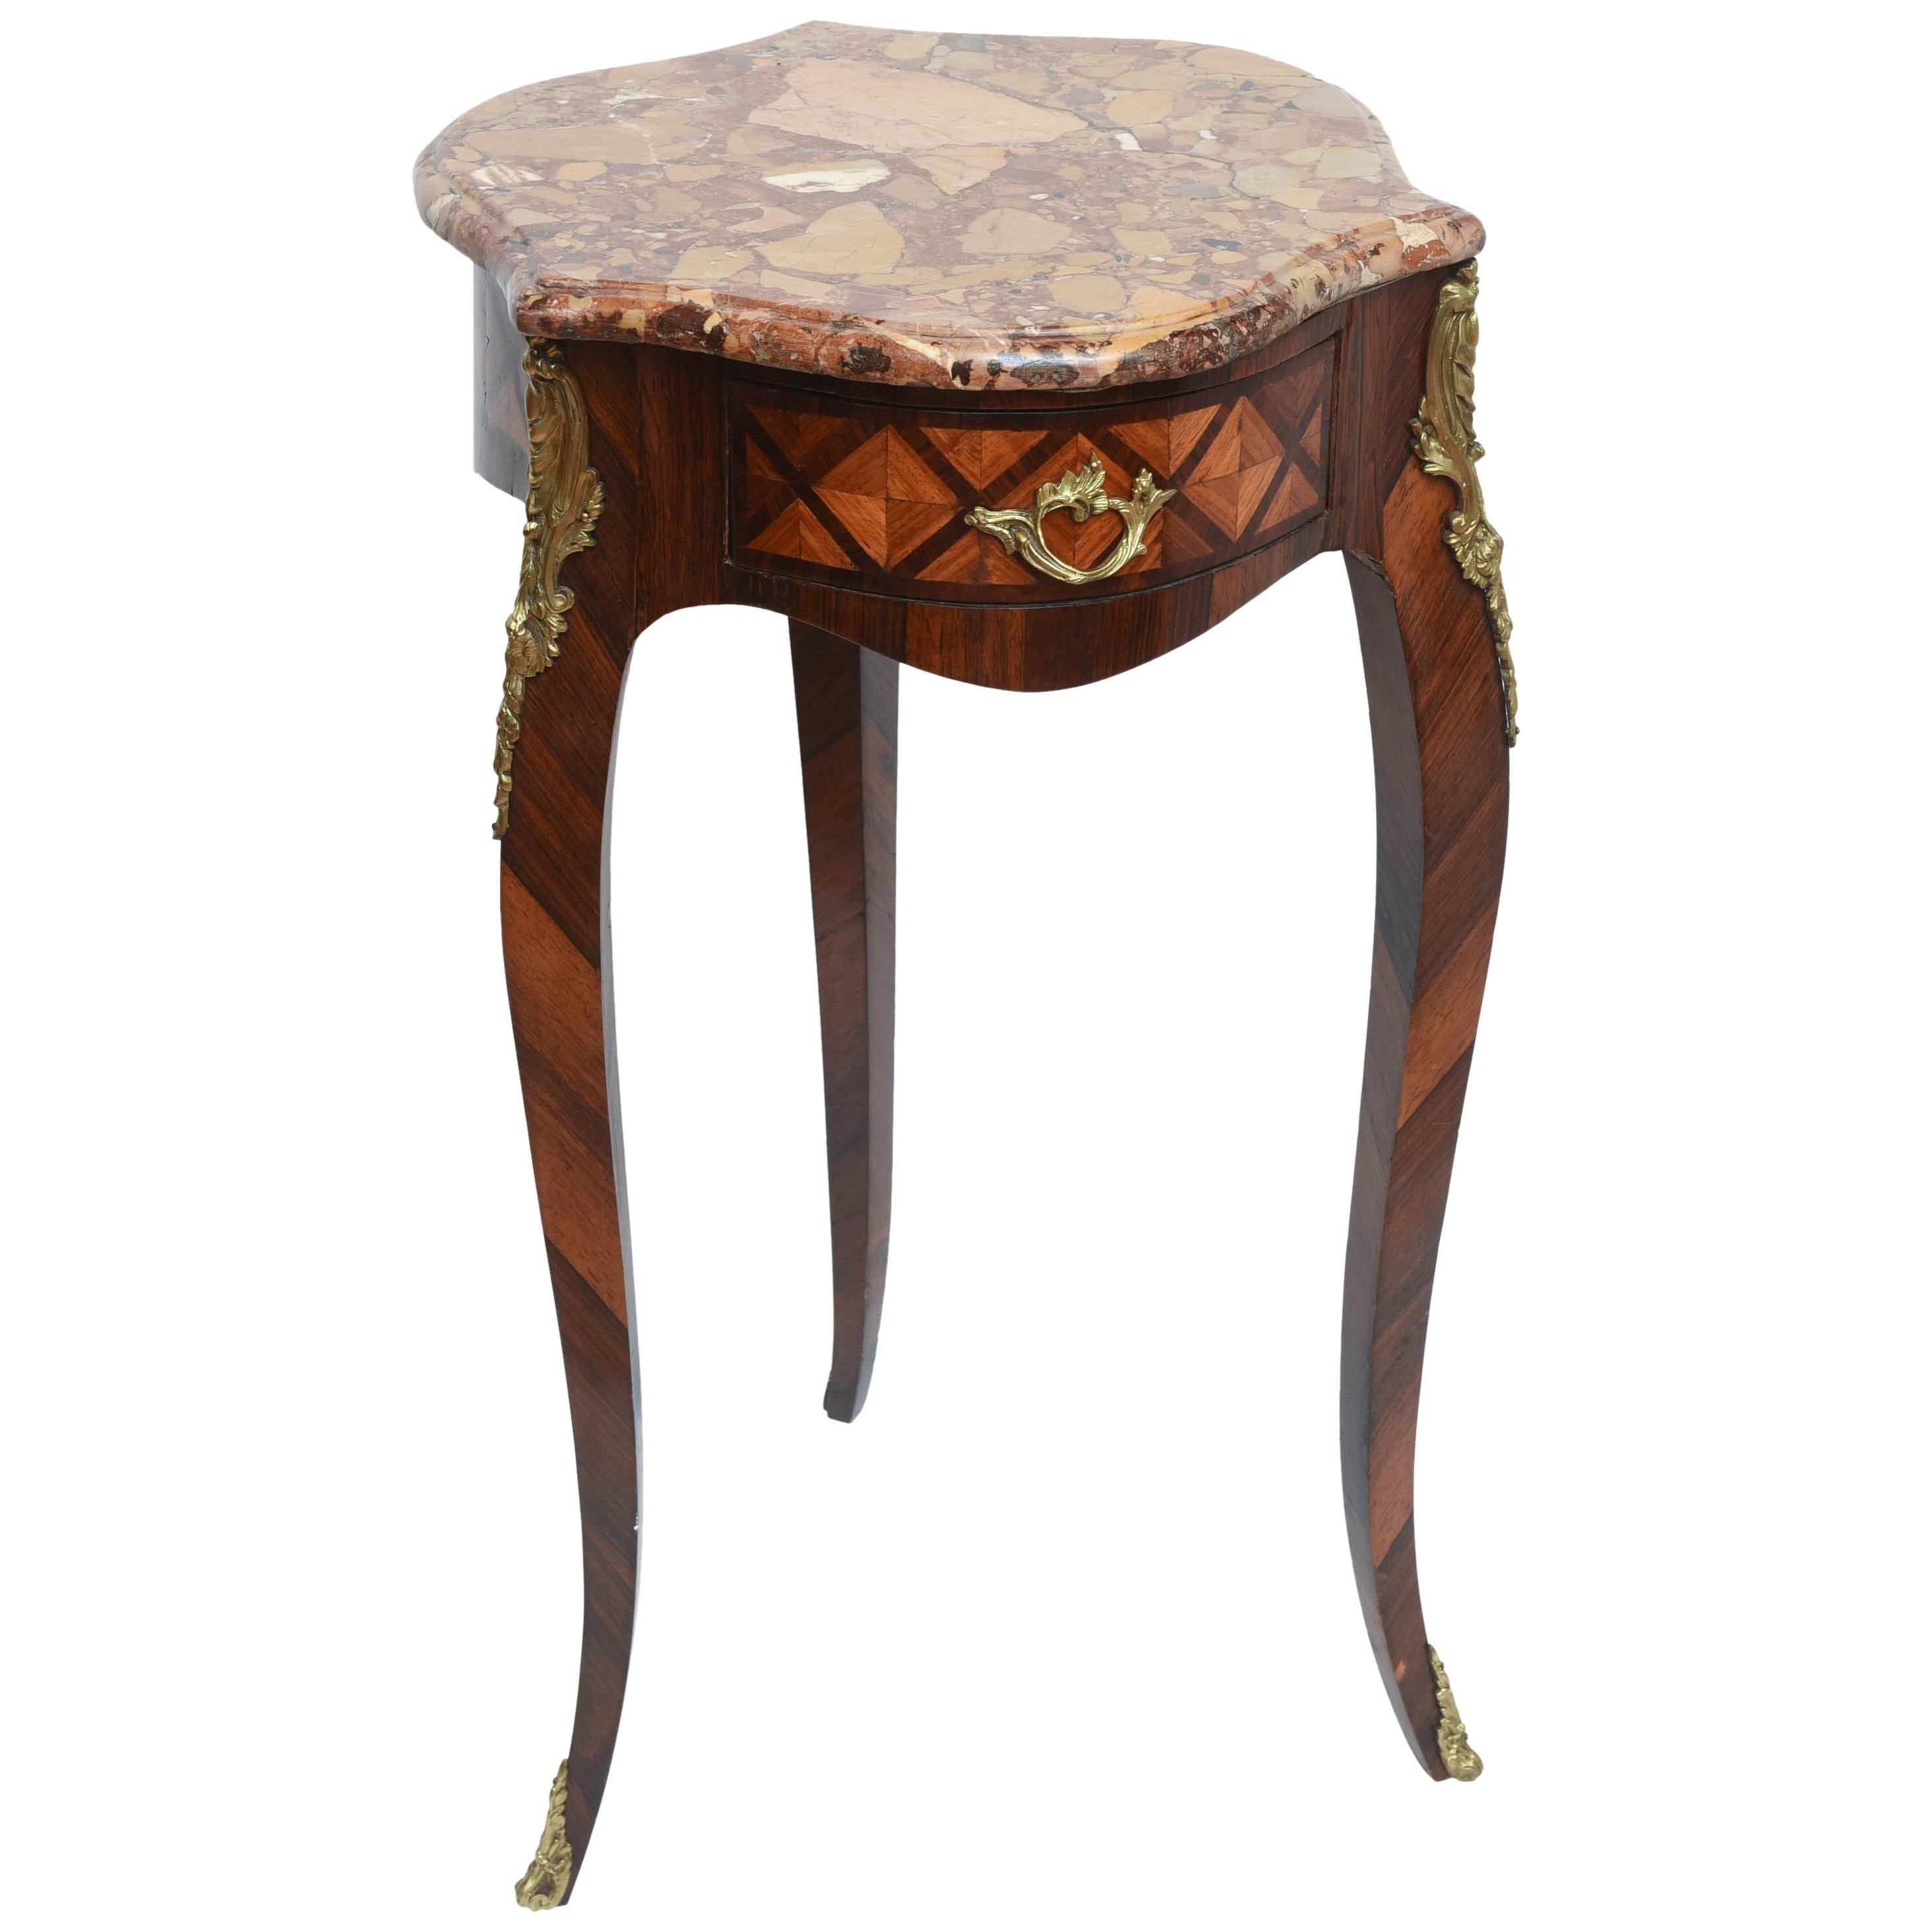 19th c. French Marble Top Gueridon